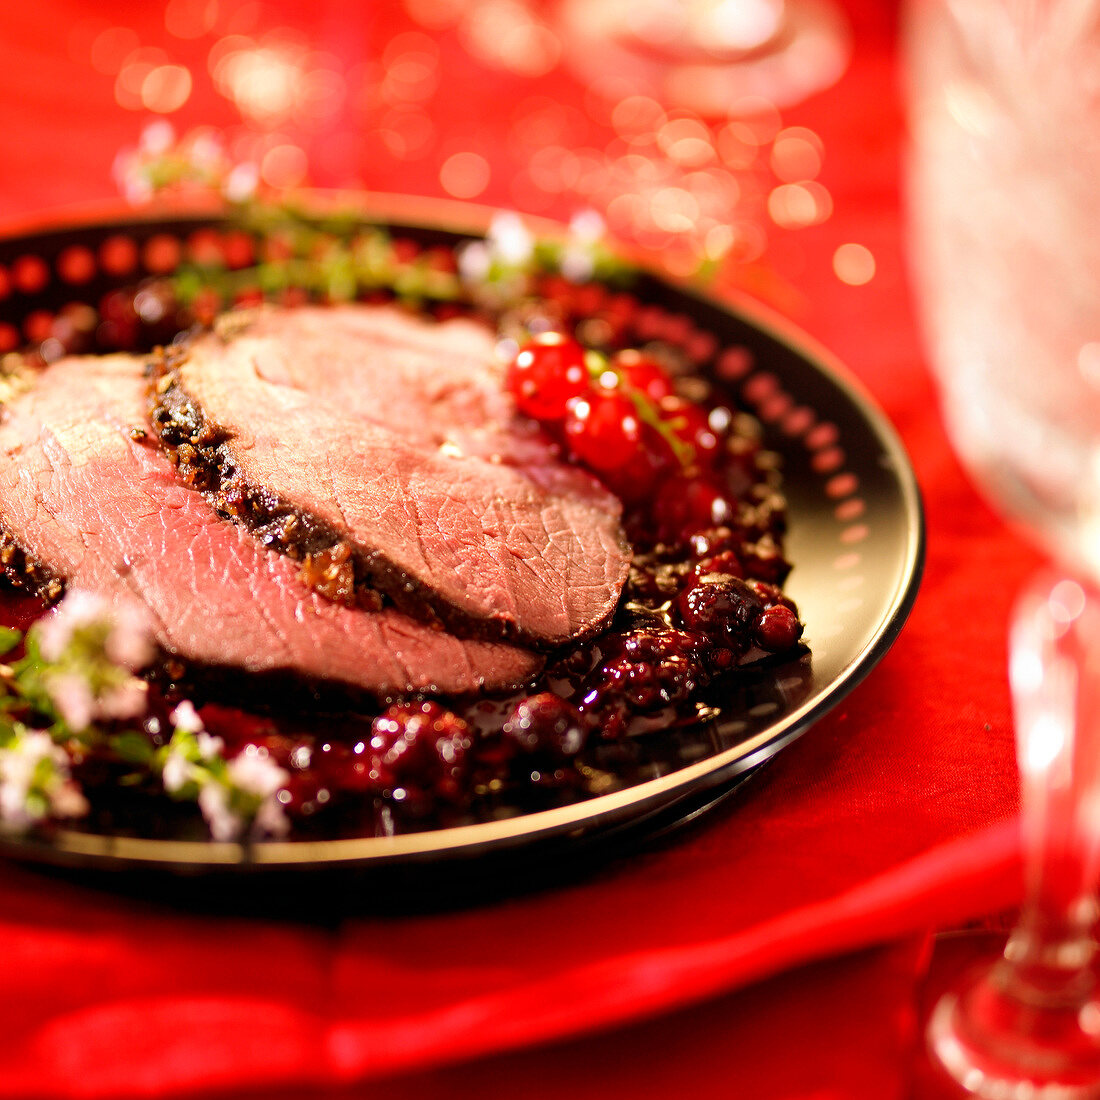 Slices of roasted wild boar with redcurrant sauce